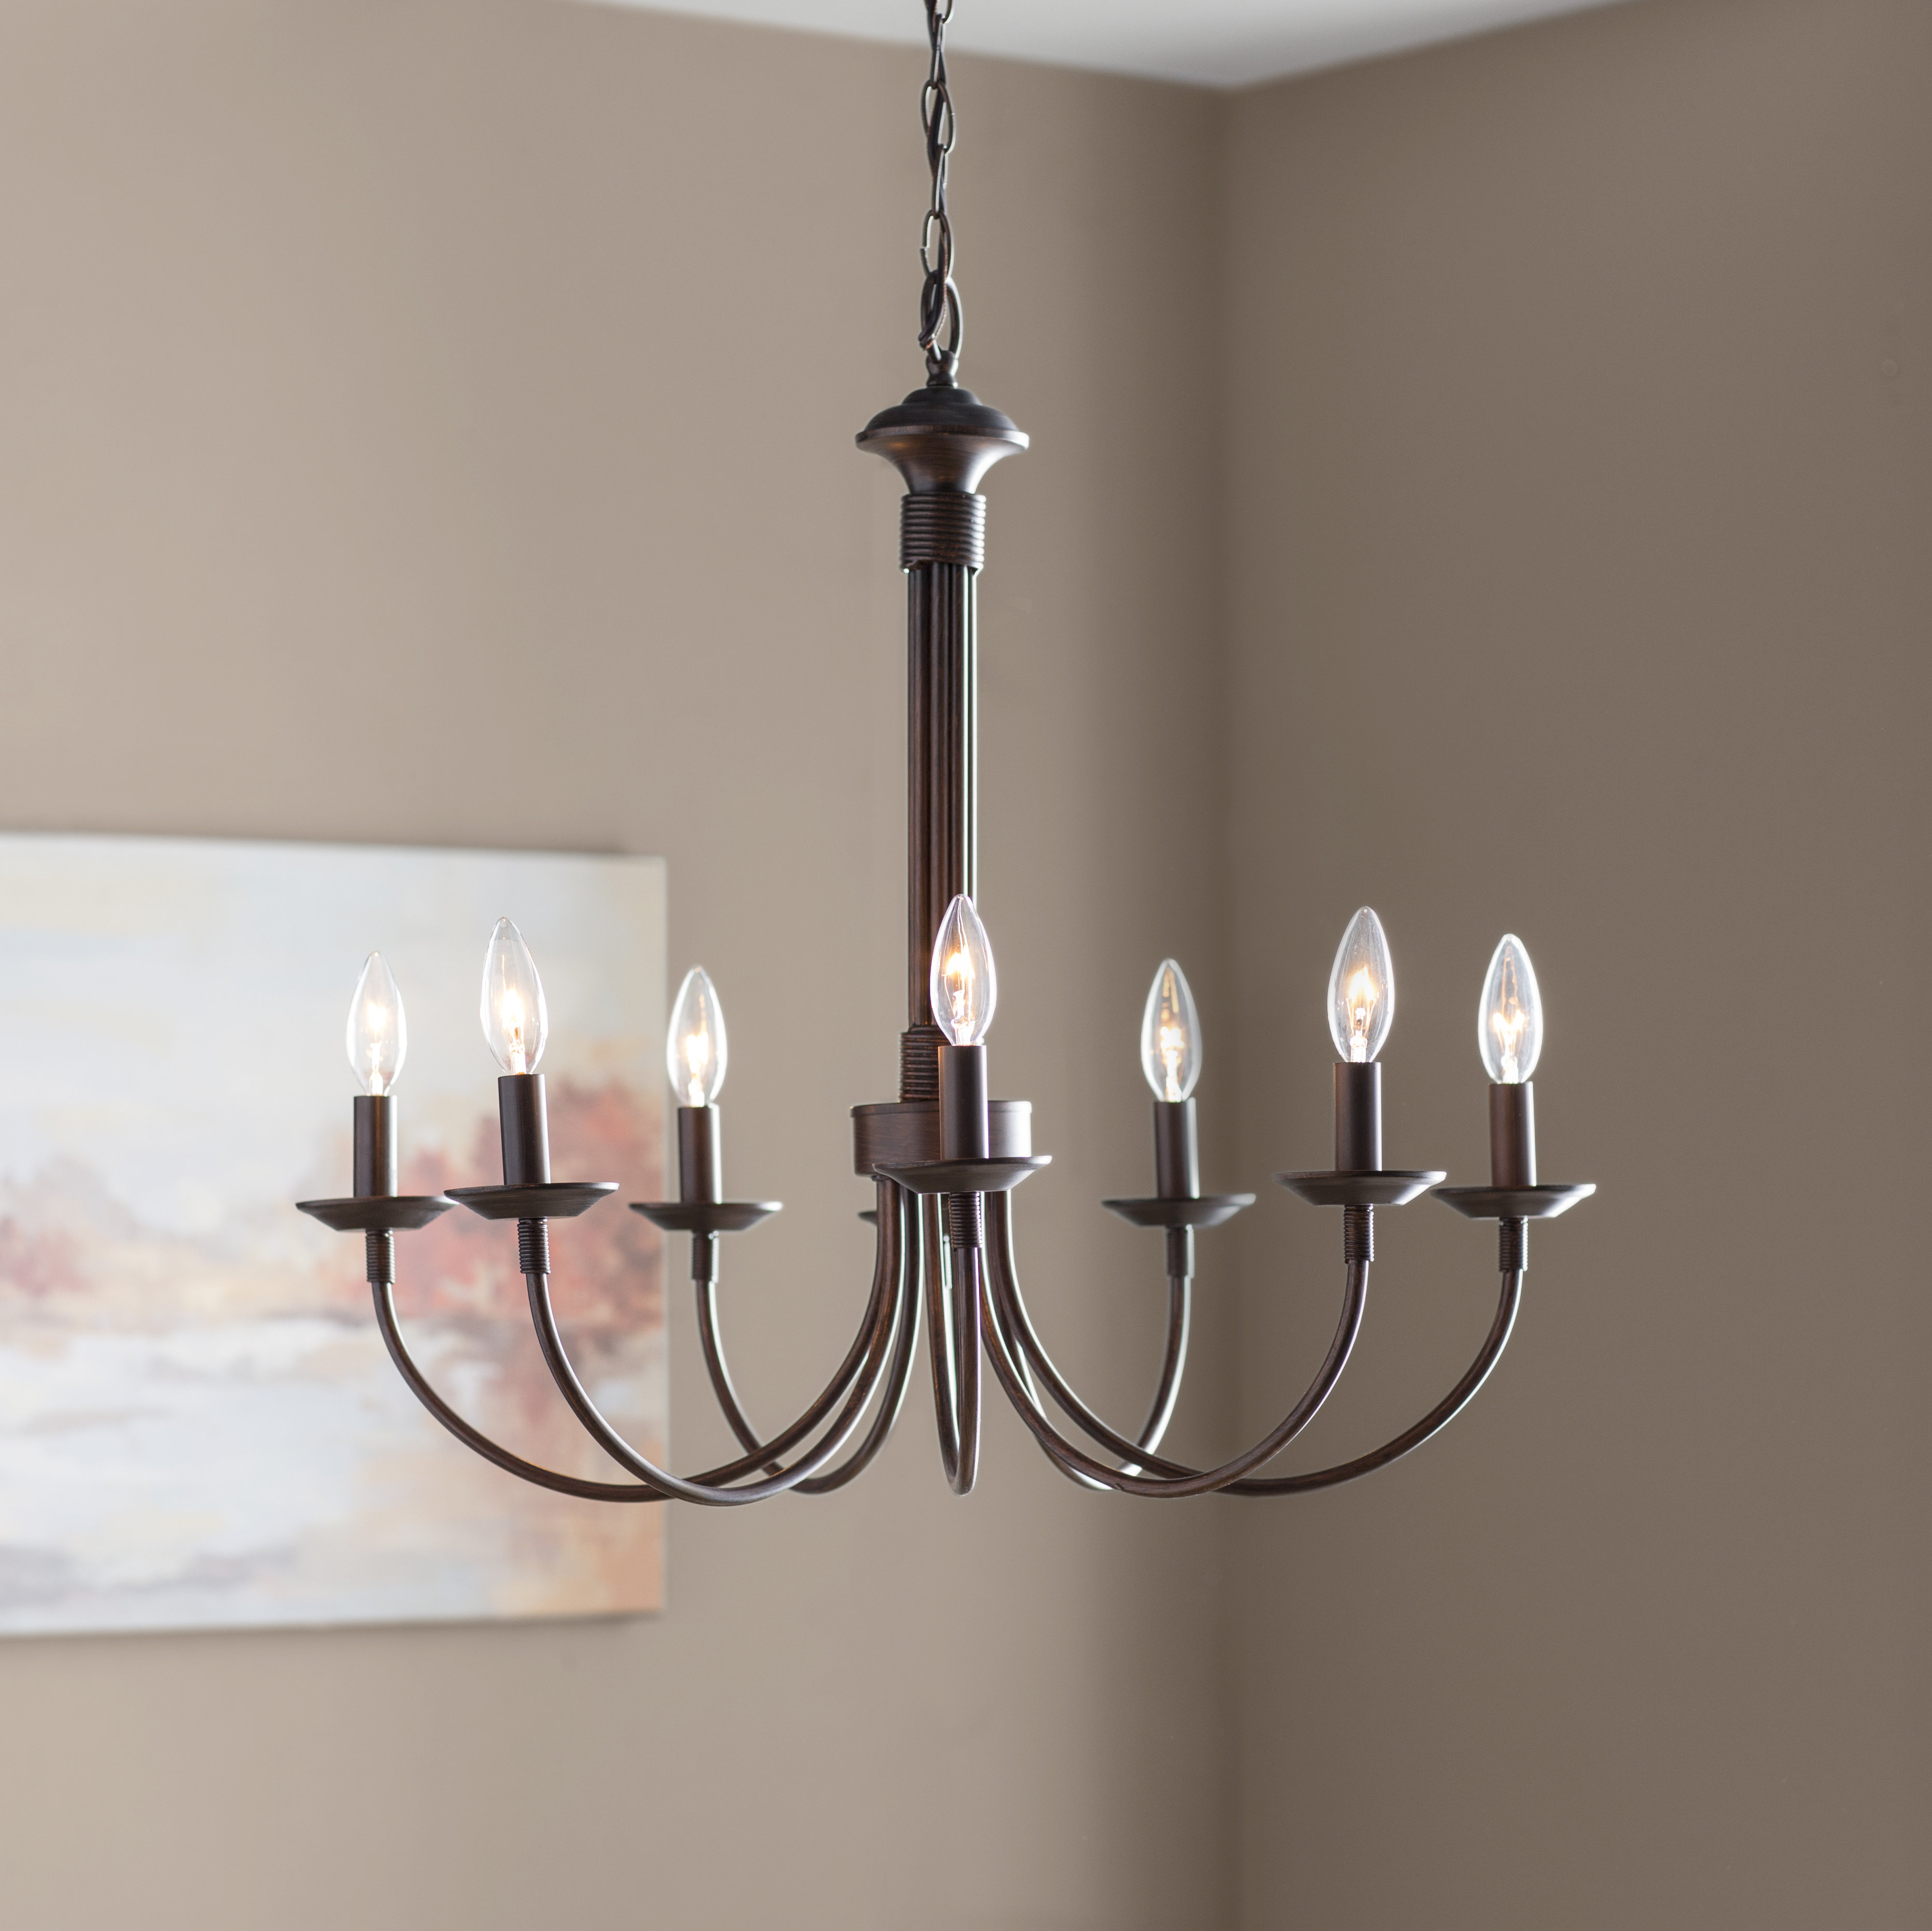 2019 Shaylee 8 Light Candle Style Chandelier For Watford 9 Light Candle Style Chandeliers (View 17 of 25)